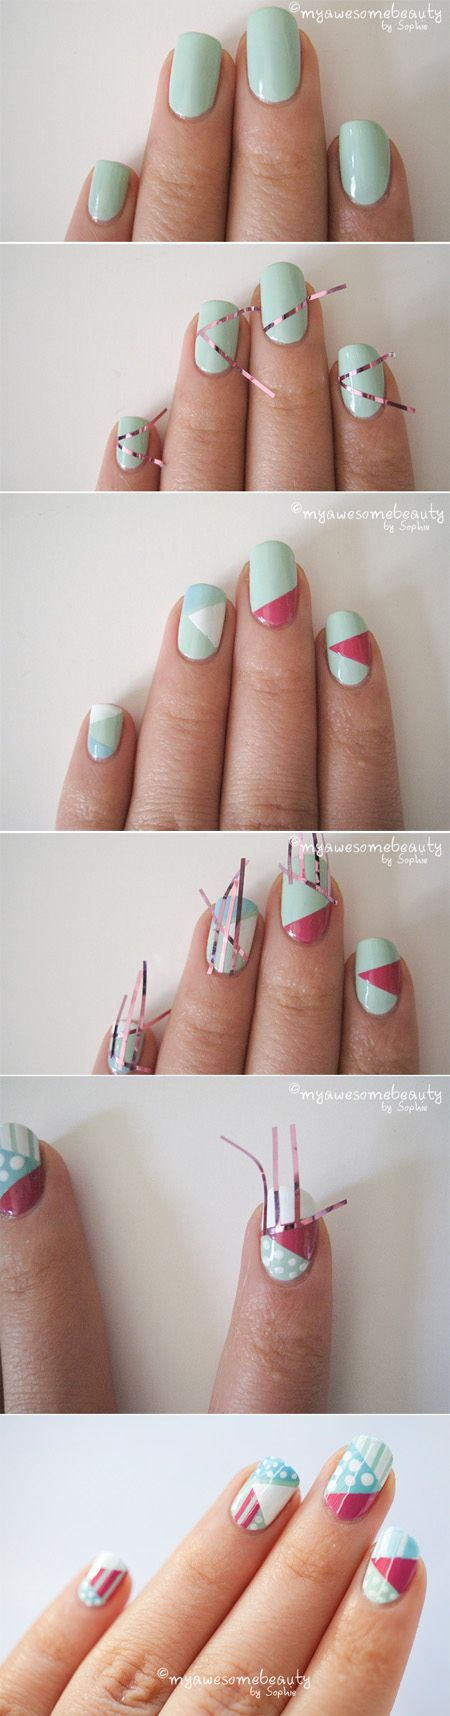 : Nails Art Tutorials, Nailart, Nails Design, Nails Ideas, Nails Polish, Nail Design, Nails Art Design, Nails Tutorials, Diy Nails